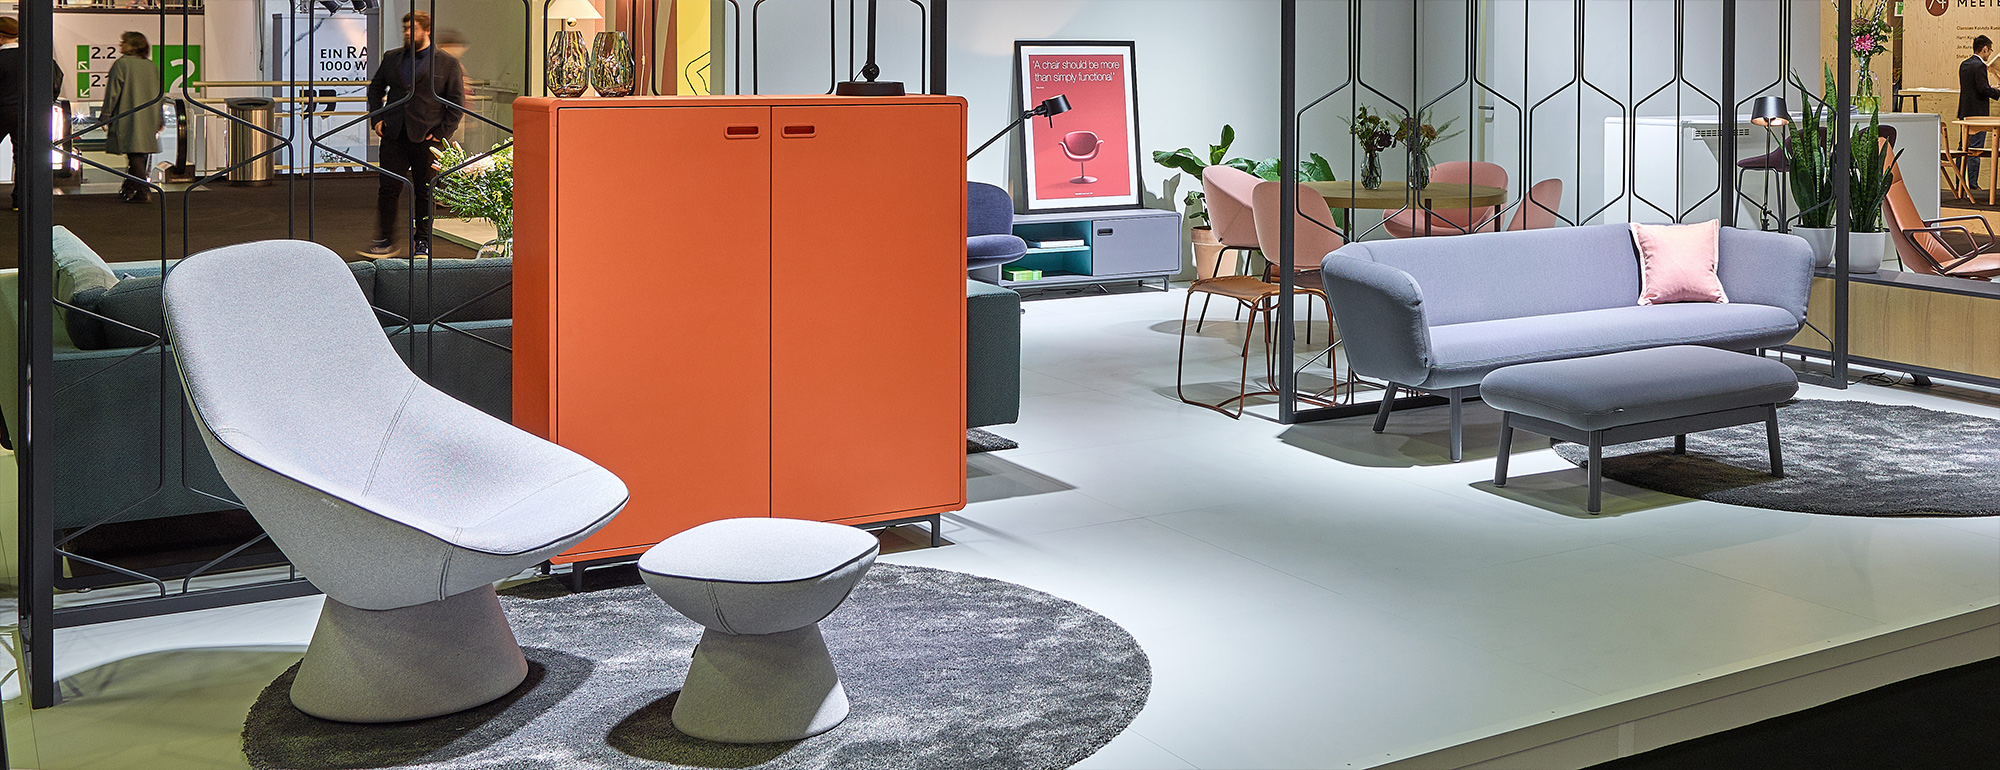 Artifort stand à IMM Cologne 2018